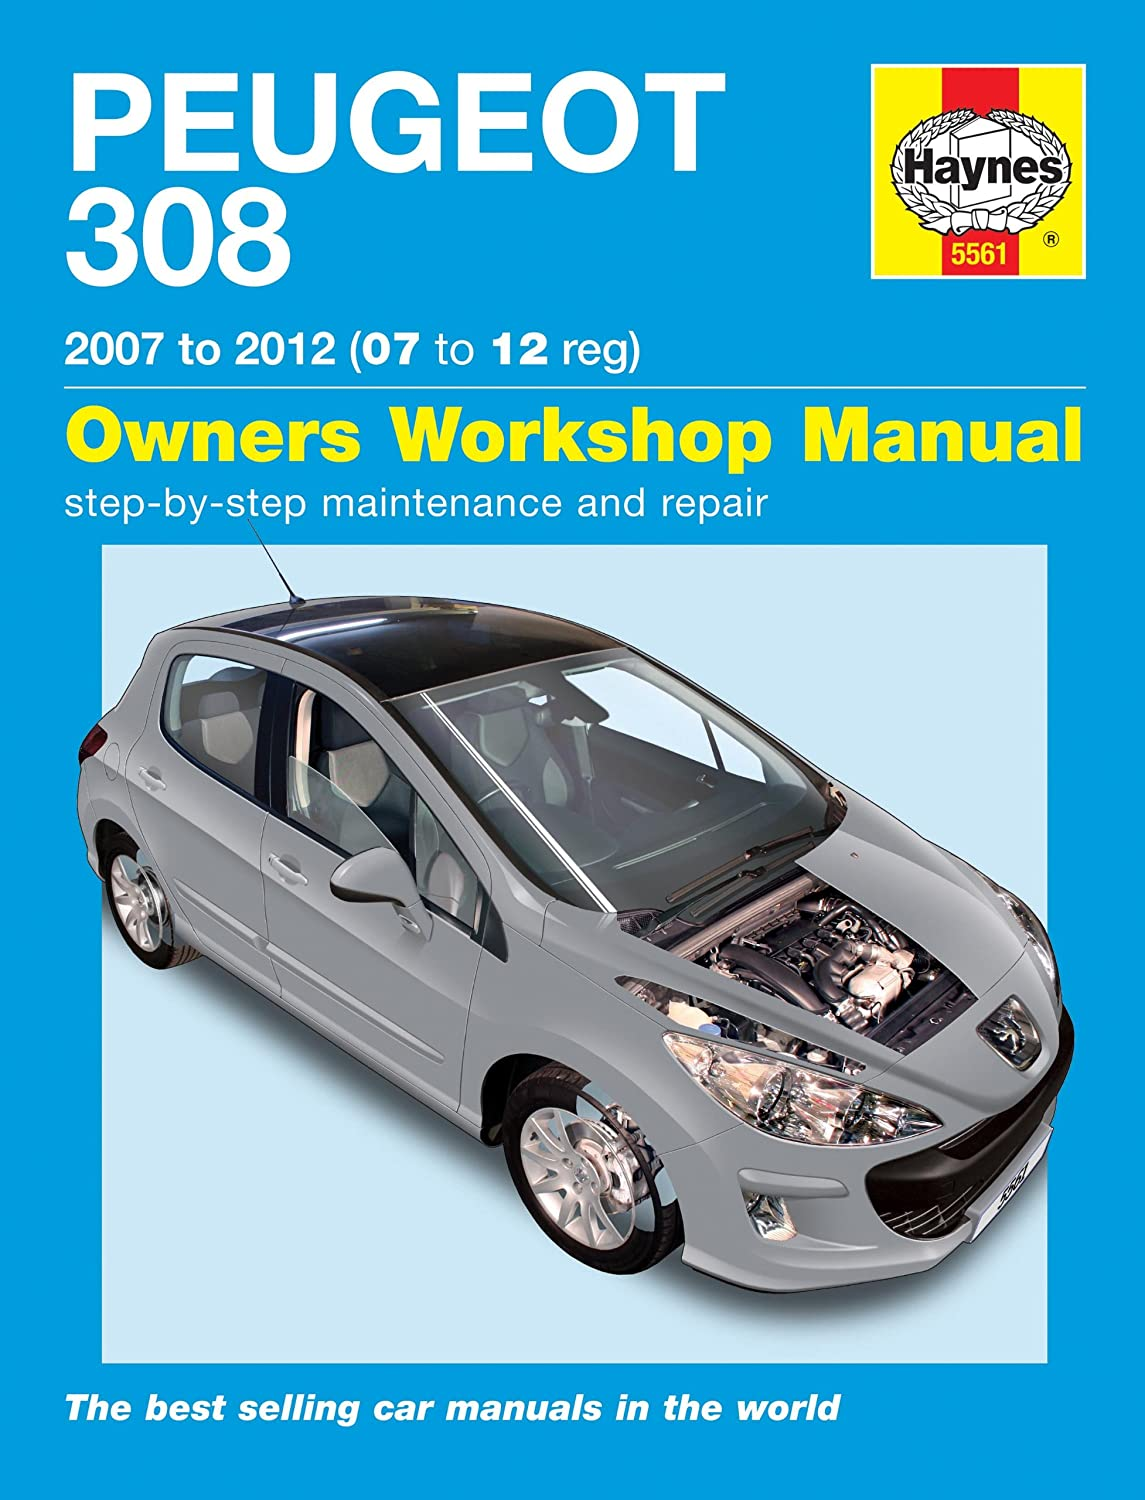 811A9hQw0EL._SL1500_ peugeot 308 1 4 1 6 vti thp 1 6 hdil 2007 2012 manual amazon co peugeot 308 wiring diagram download at soozxer.org